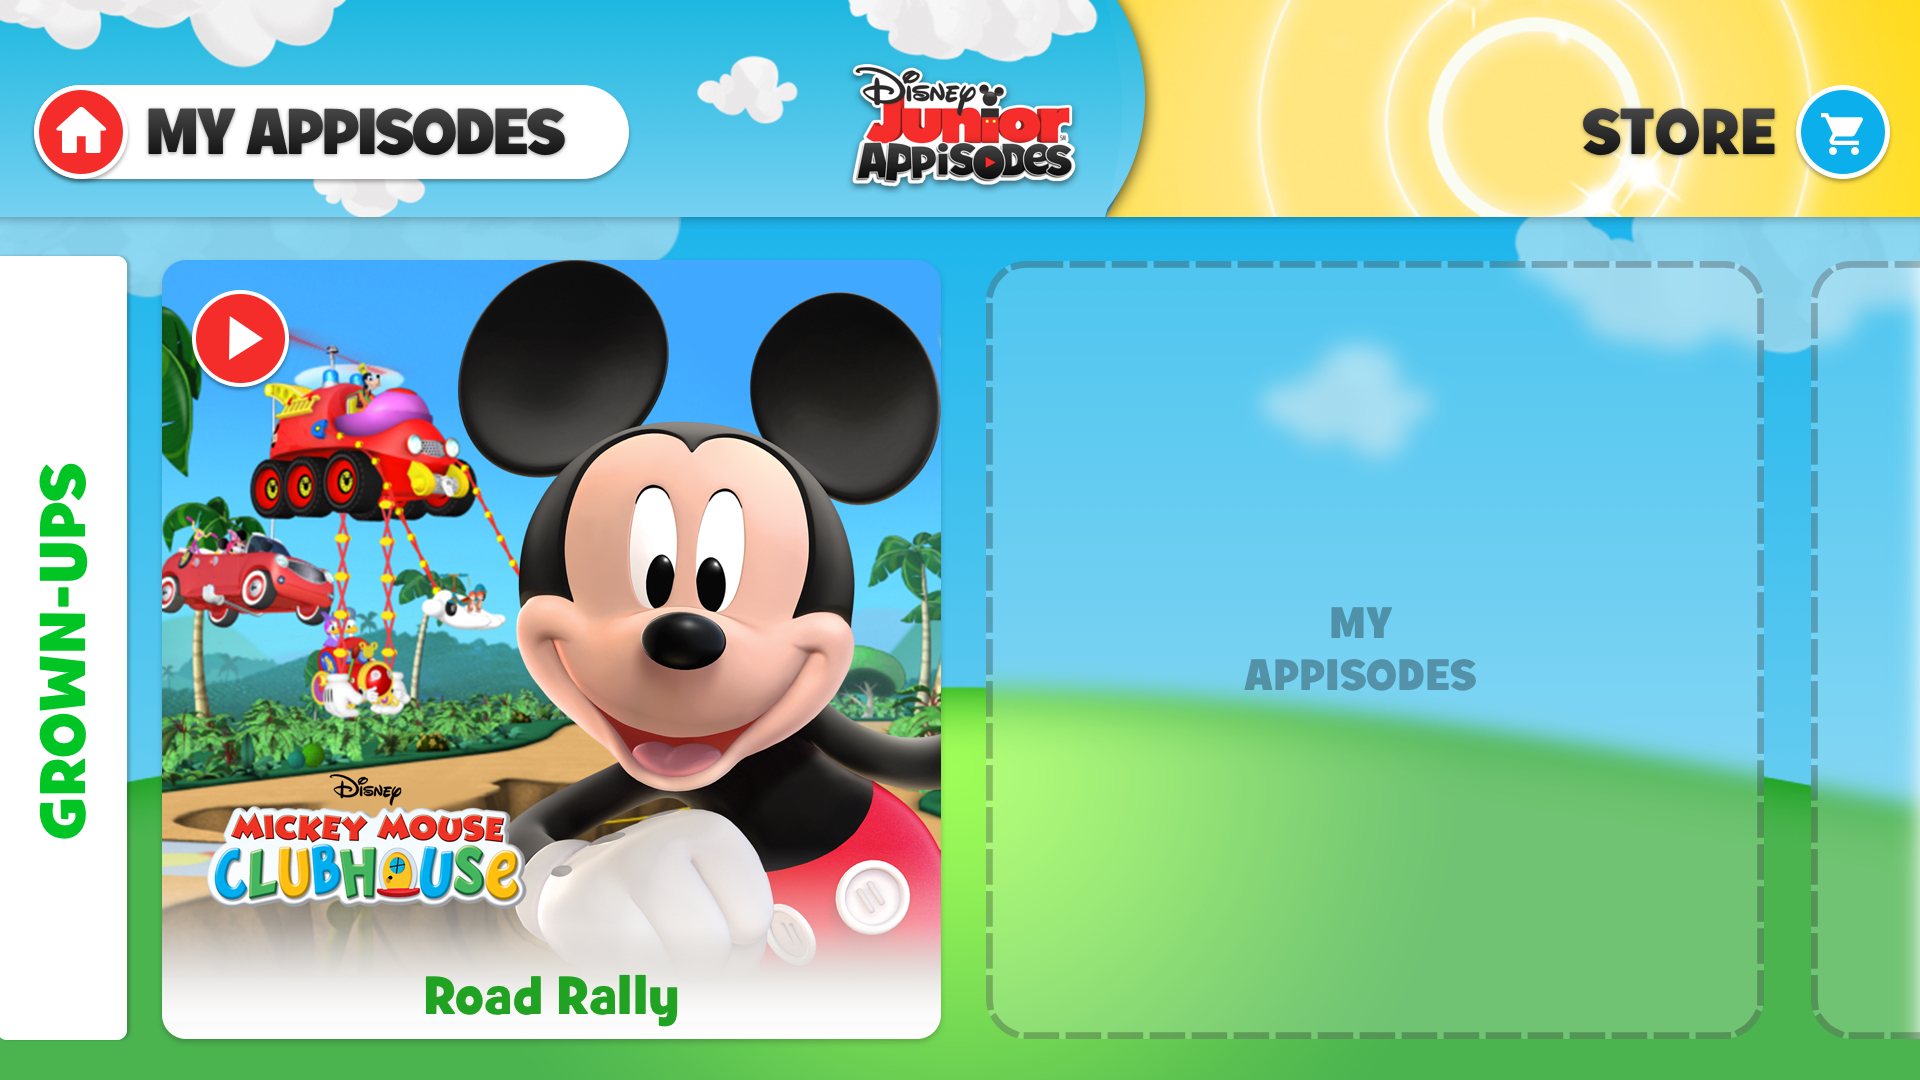 The official website for all things Disney theme parks resorts movies tv programs characters games videos music shopping and more!